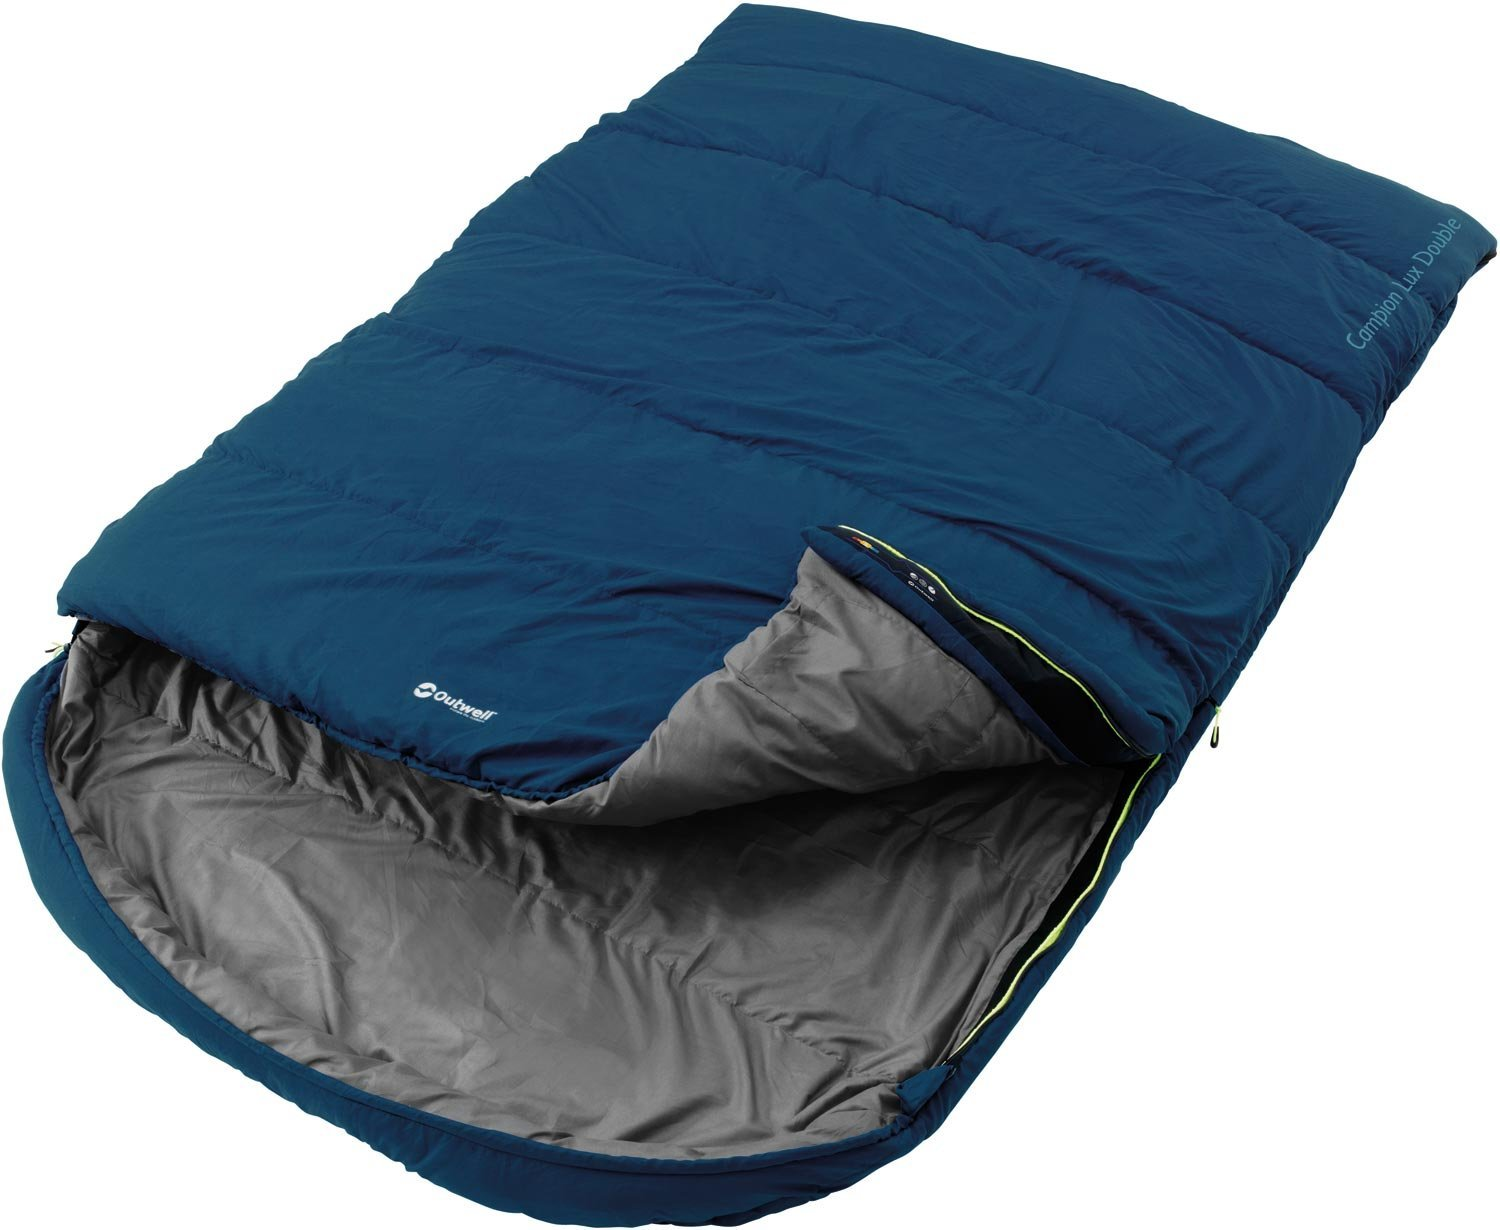 Outwell Campion Lux double sleeping bag blue guļammaiss